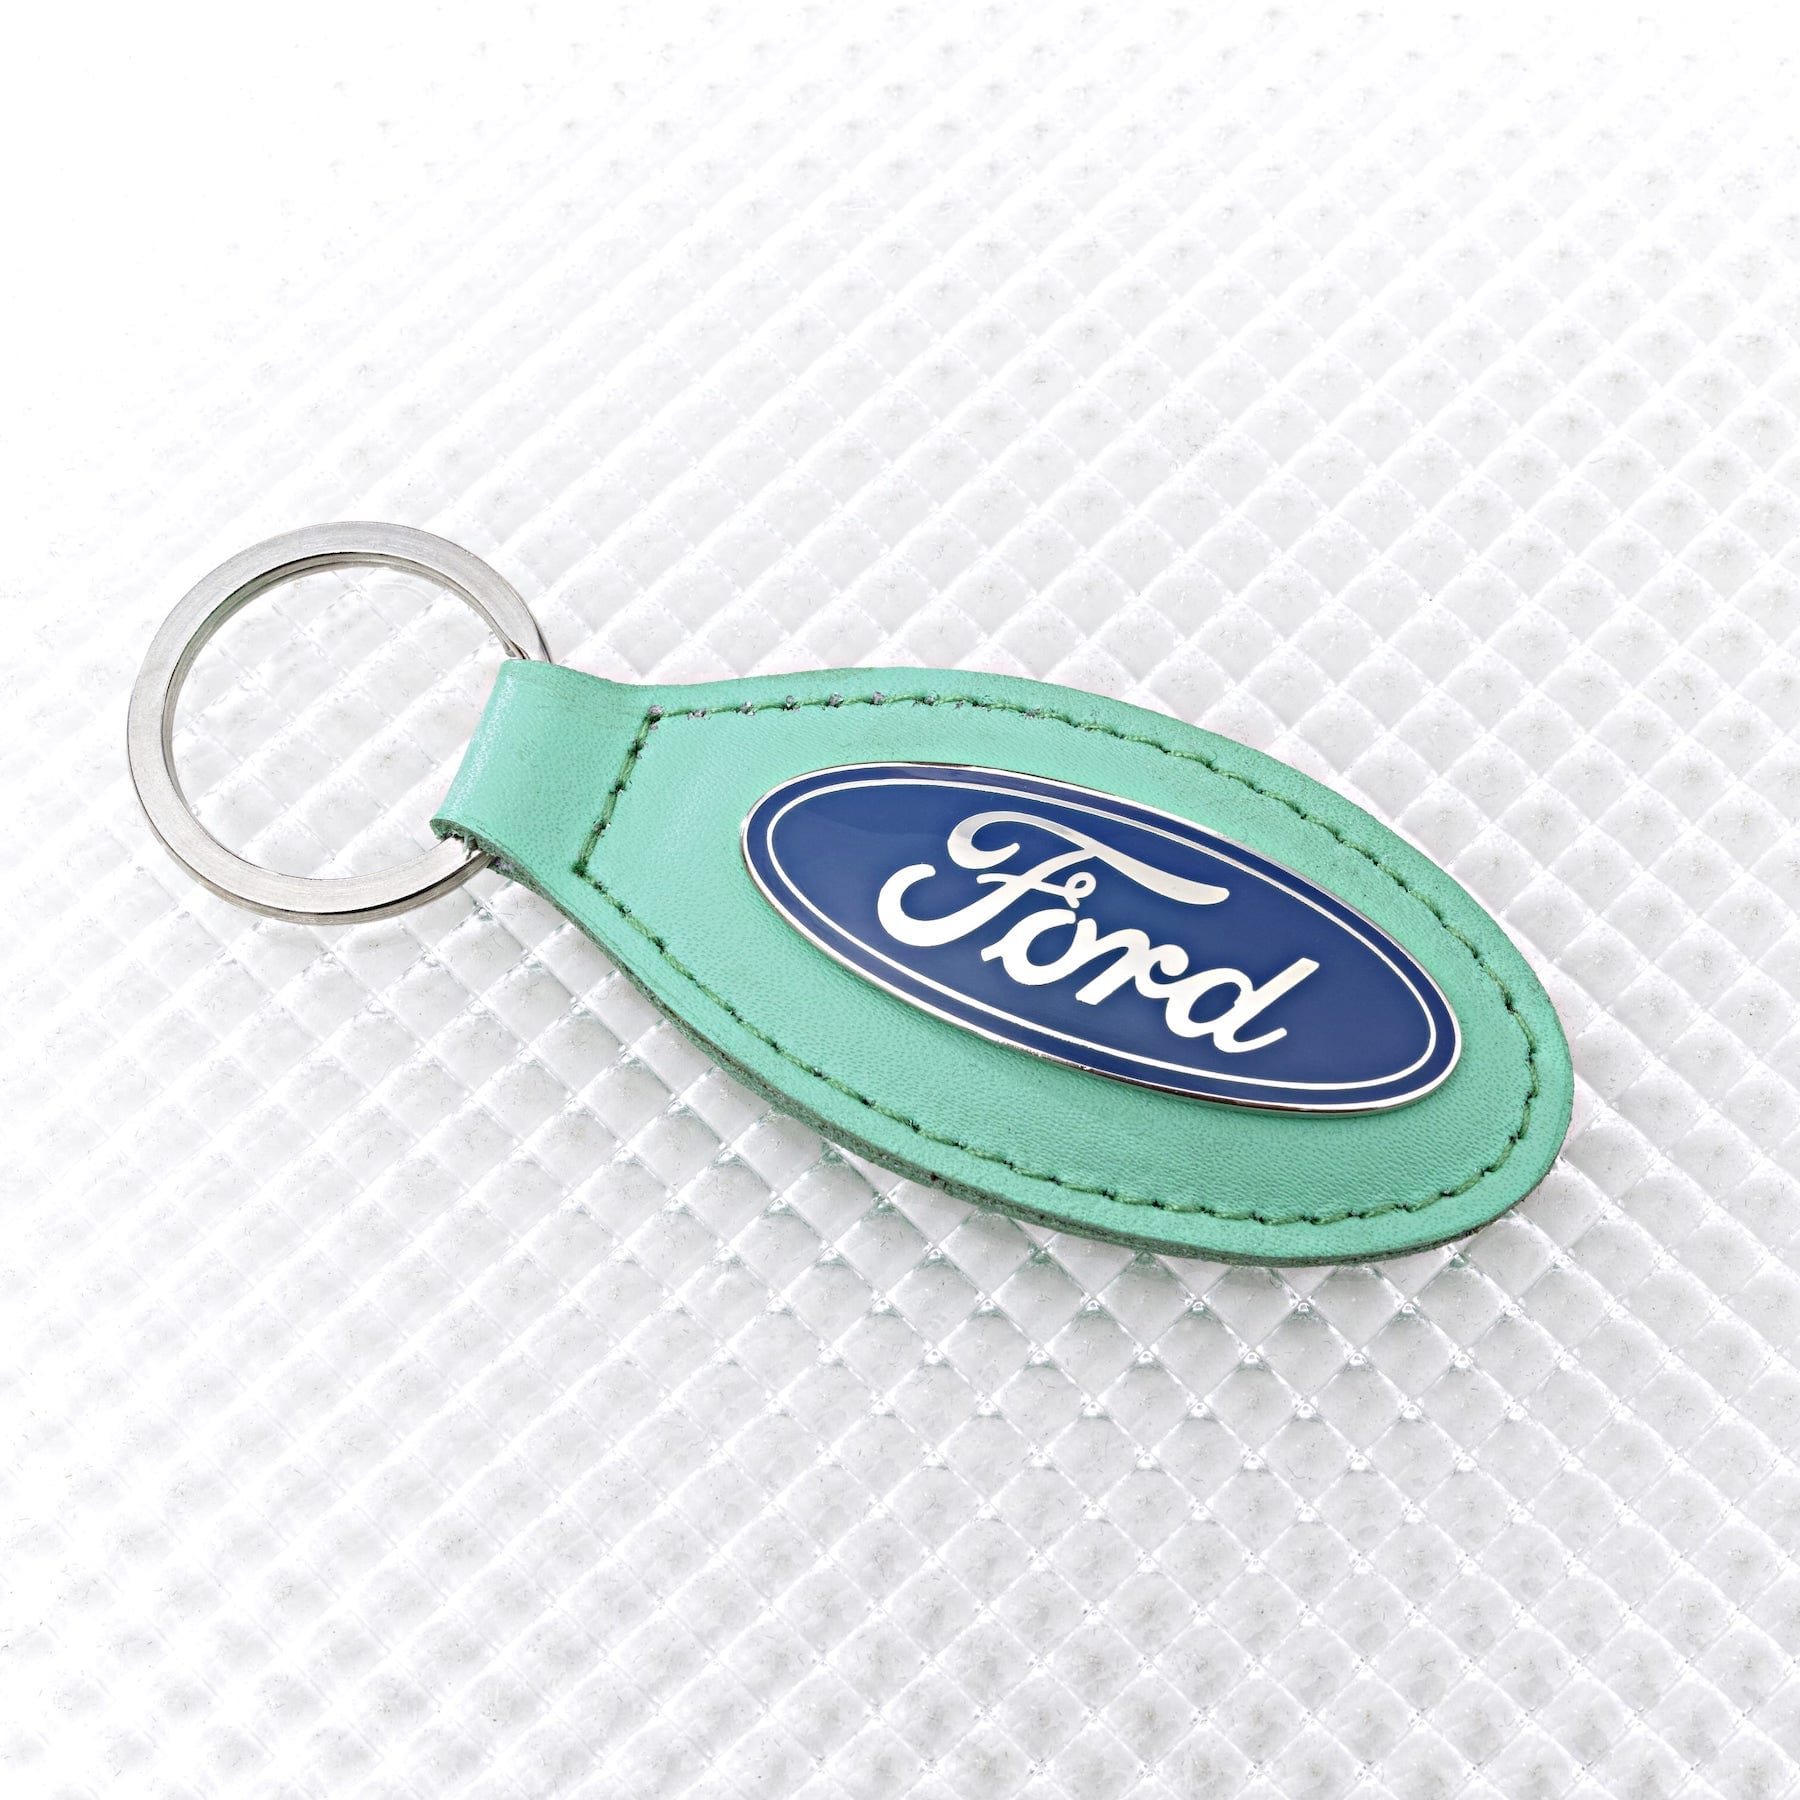 Official Licensed Ford Merchandise Ford Logo Key Ring - Mint Green